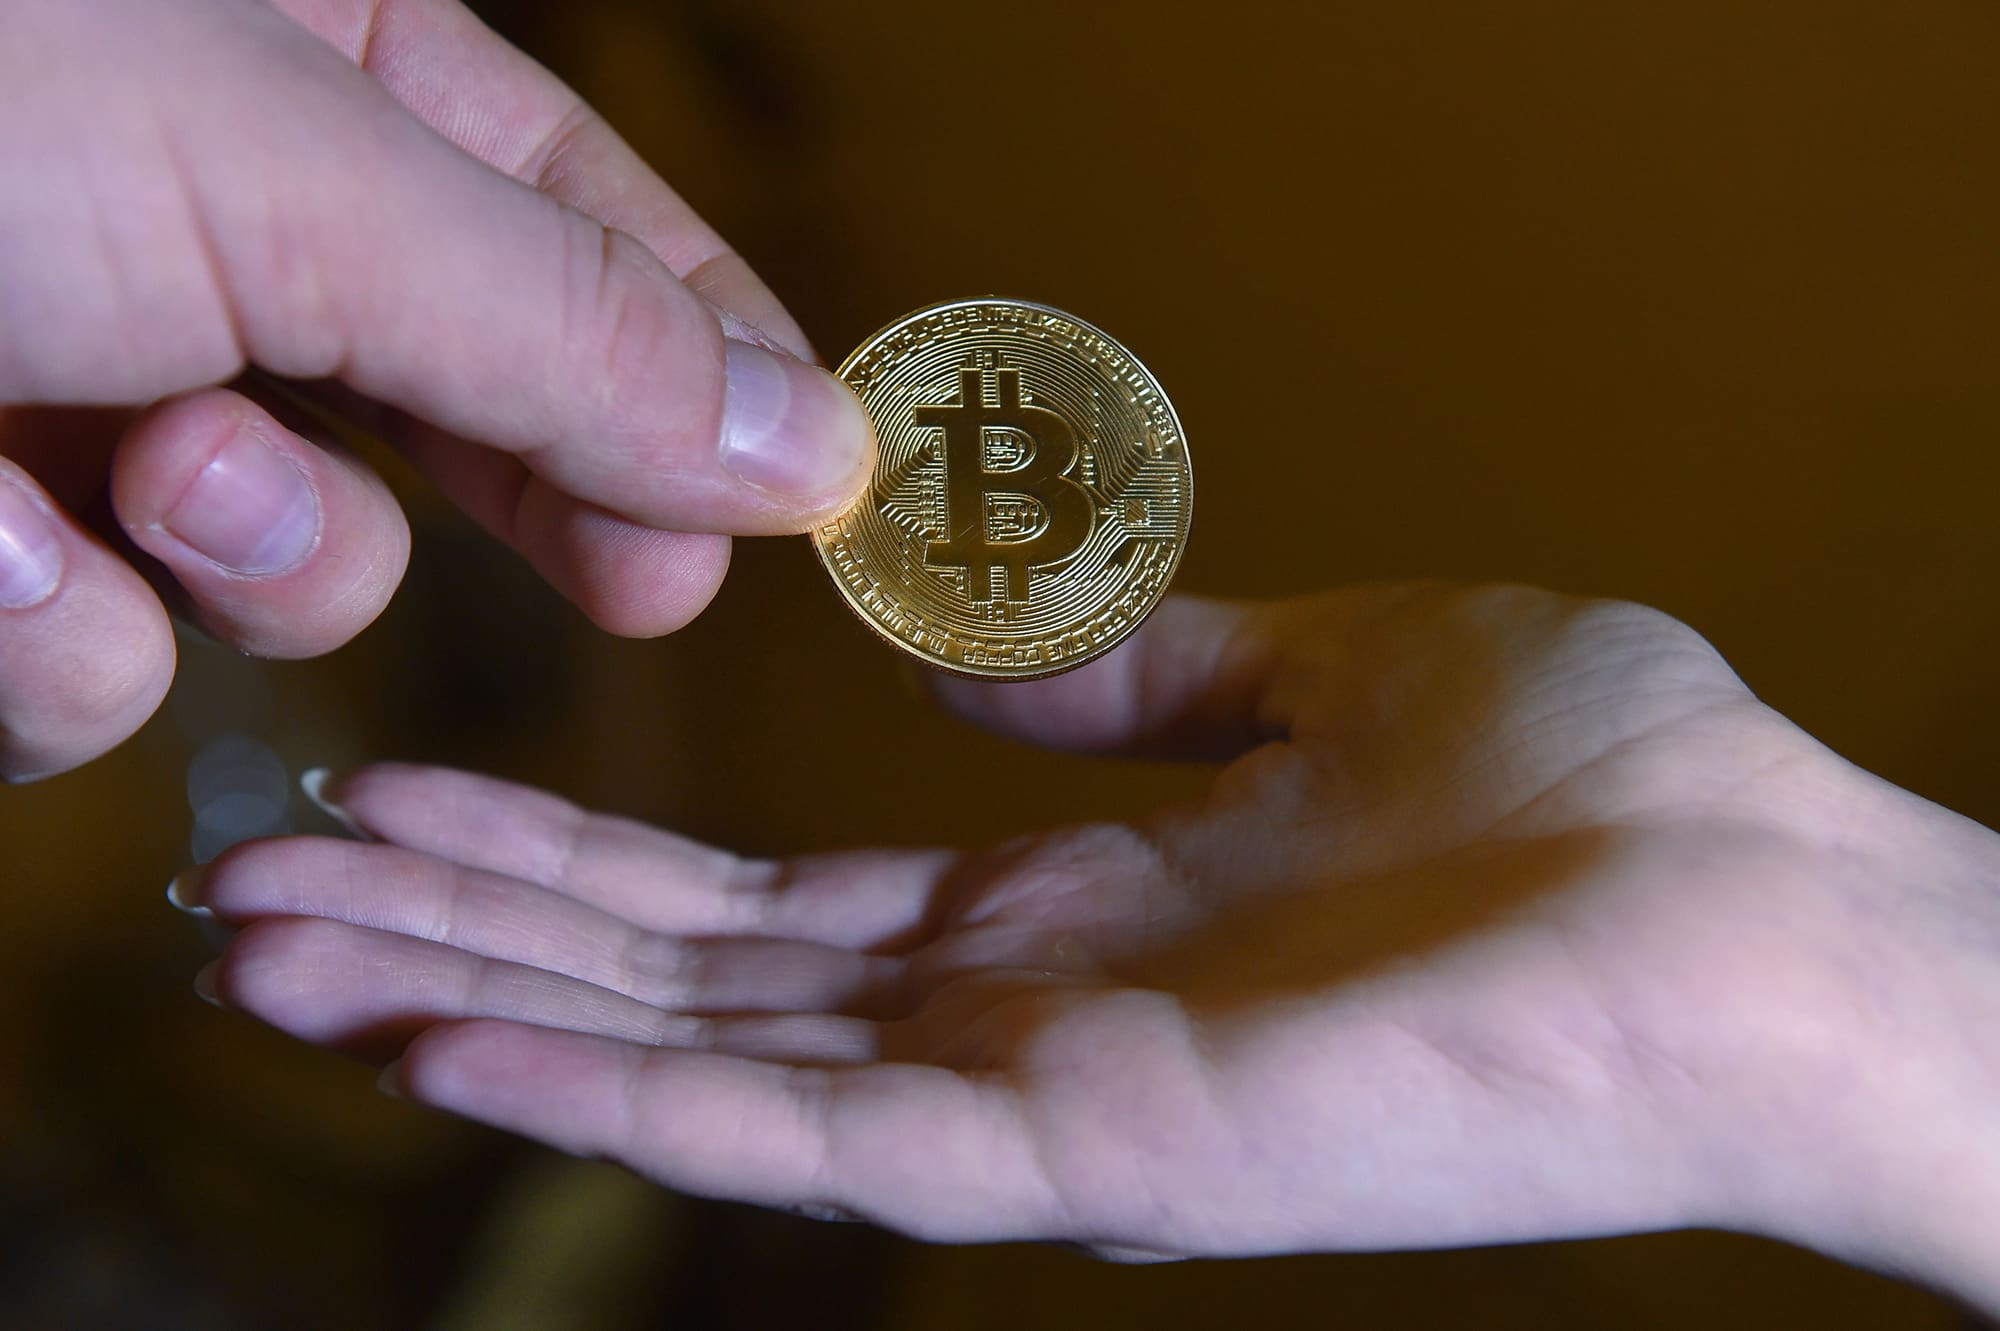 Bitcoins worthless coin first half betting nba all star